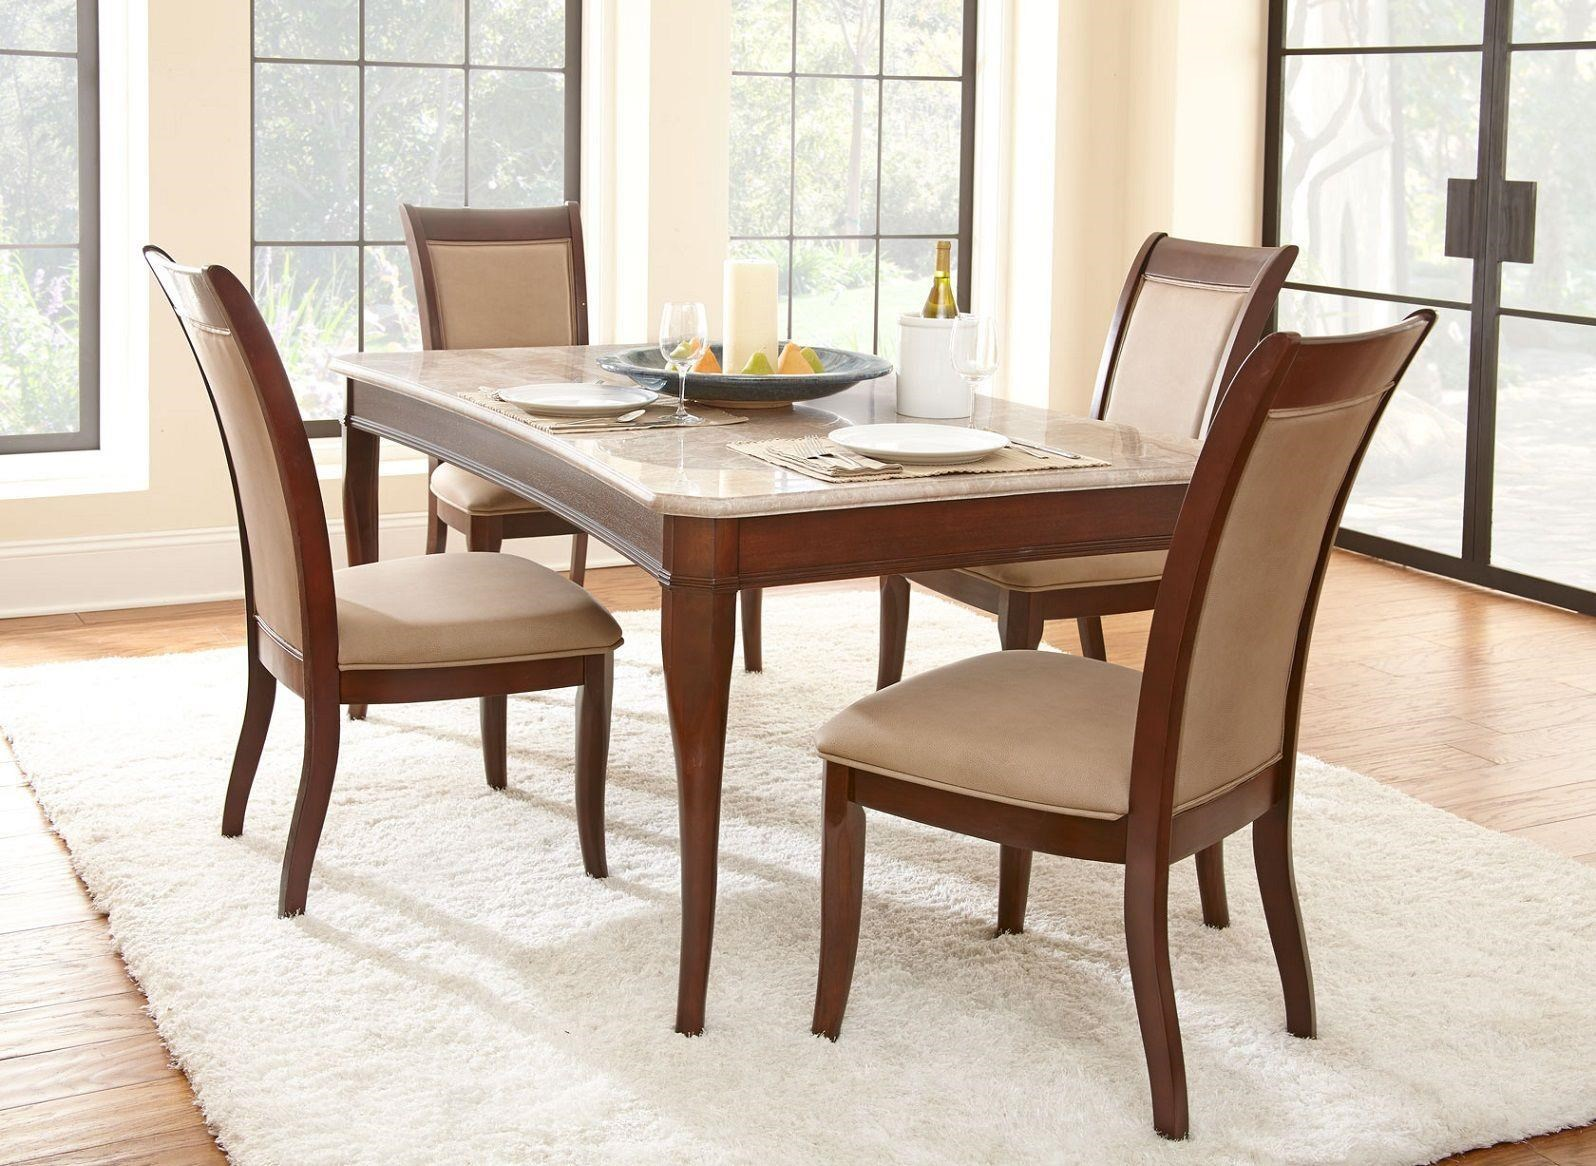 Steve Silver Marseille Marble Top Table With 4 Chairs Royal Furniture Dining 5 Piece Sets